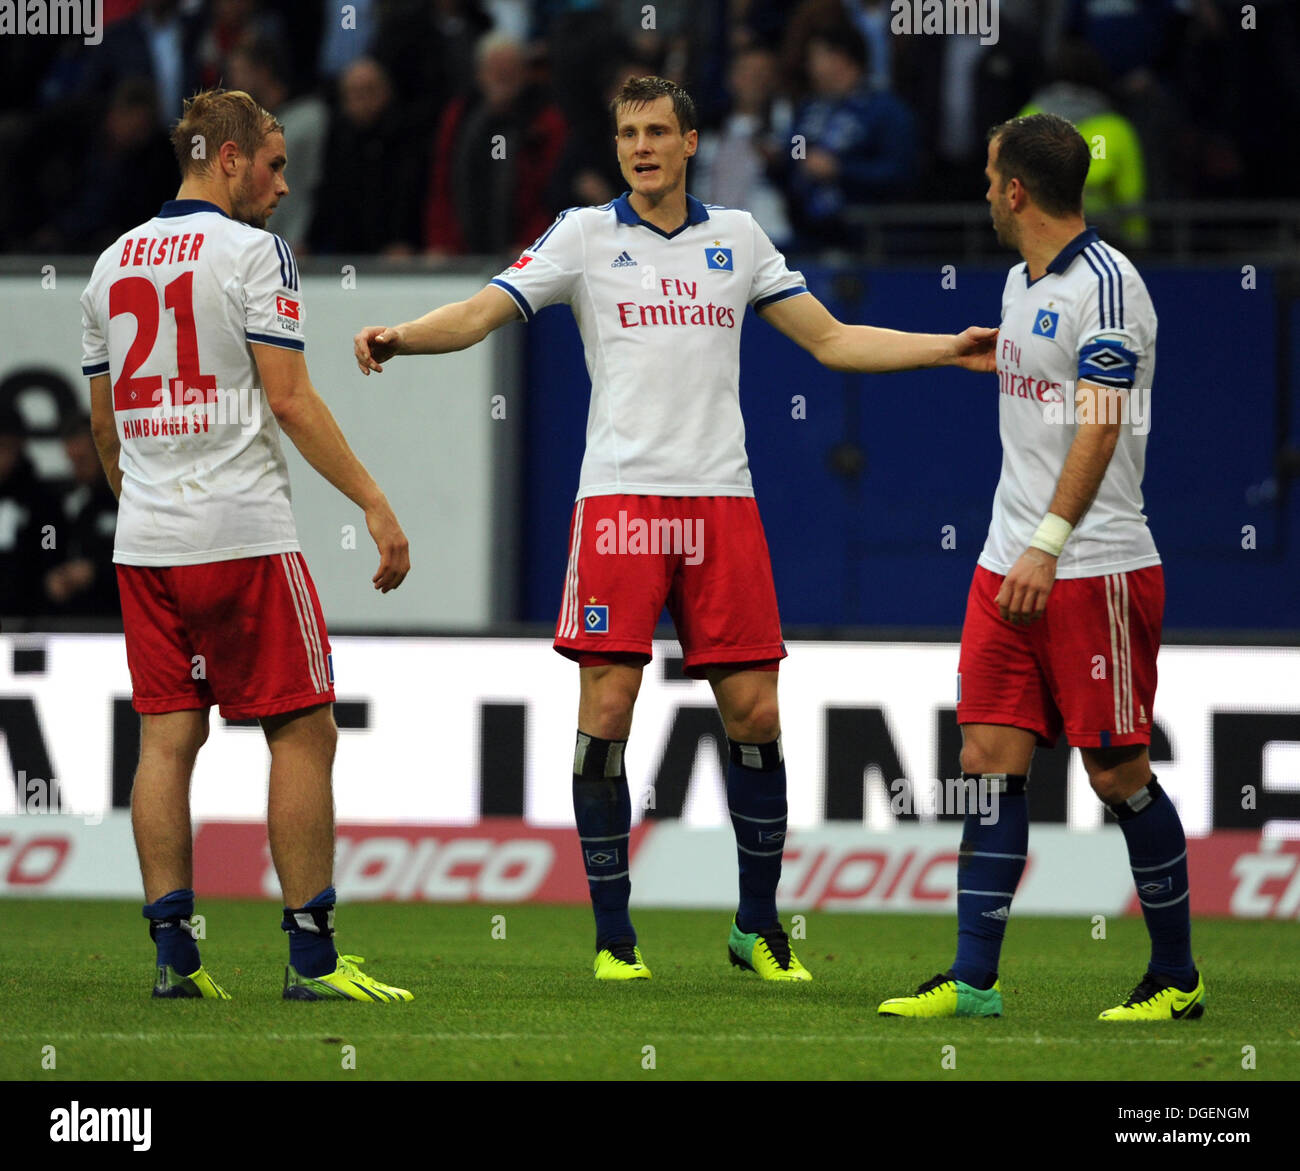 Hamburg, Germany. 20th Oct, 2013. Hamburg's Maximilian Beister (L-R), Marcell Jansen and Rafael van der Vaart chat during the German Bundesliga soccer match between Hamburger SV and VfB Stuttgart at the Imtech Arena in Hamburg, Germany, 20 October 2013. Photo: ANGELIKA WARMUTH (ATTENTION: Due to the accreditation guidelines, the DFL only permits the publication and utilisation of up to 15 pictures per match on the internet and in online media during the match.)/dpa/Alamy Live News - Stock Image